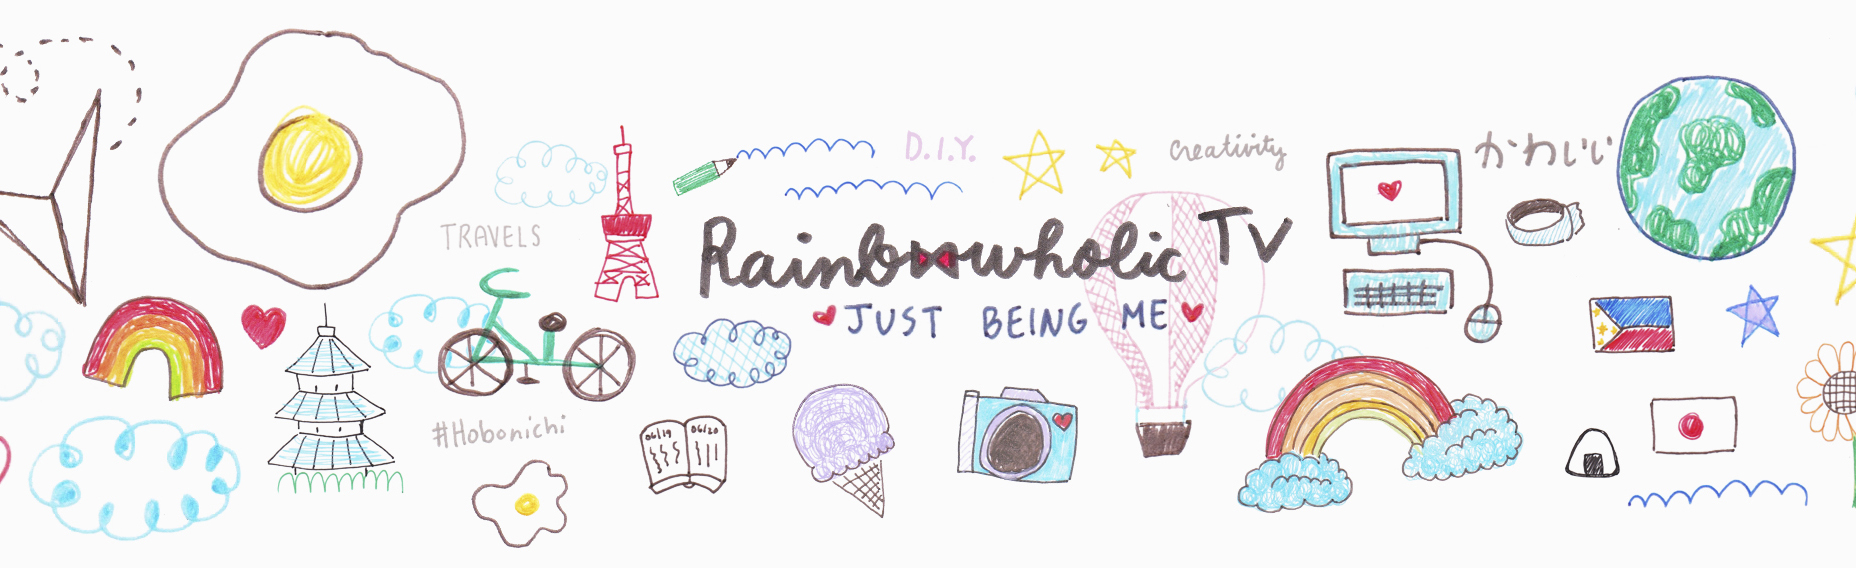 rainbowholic tv channel art copy